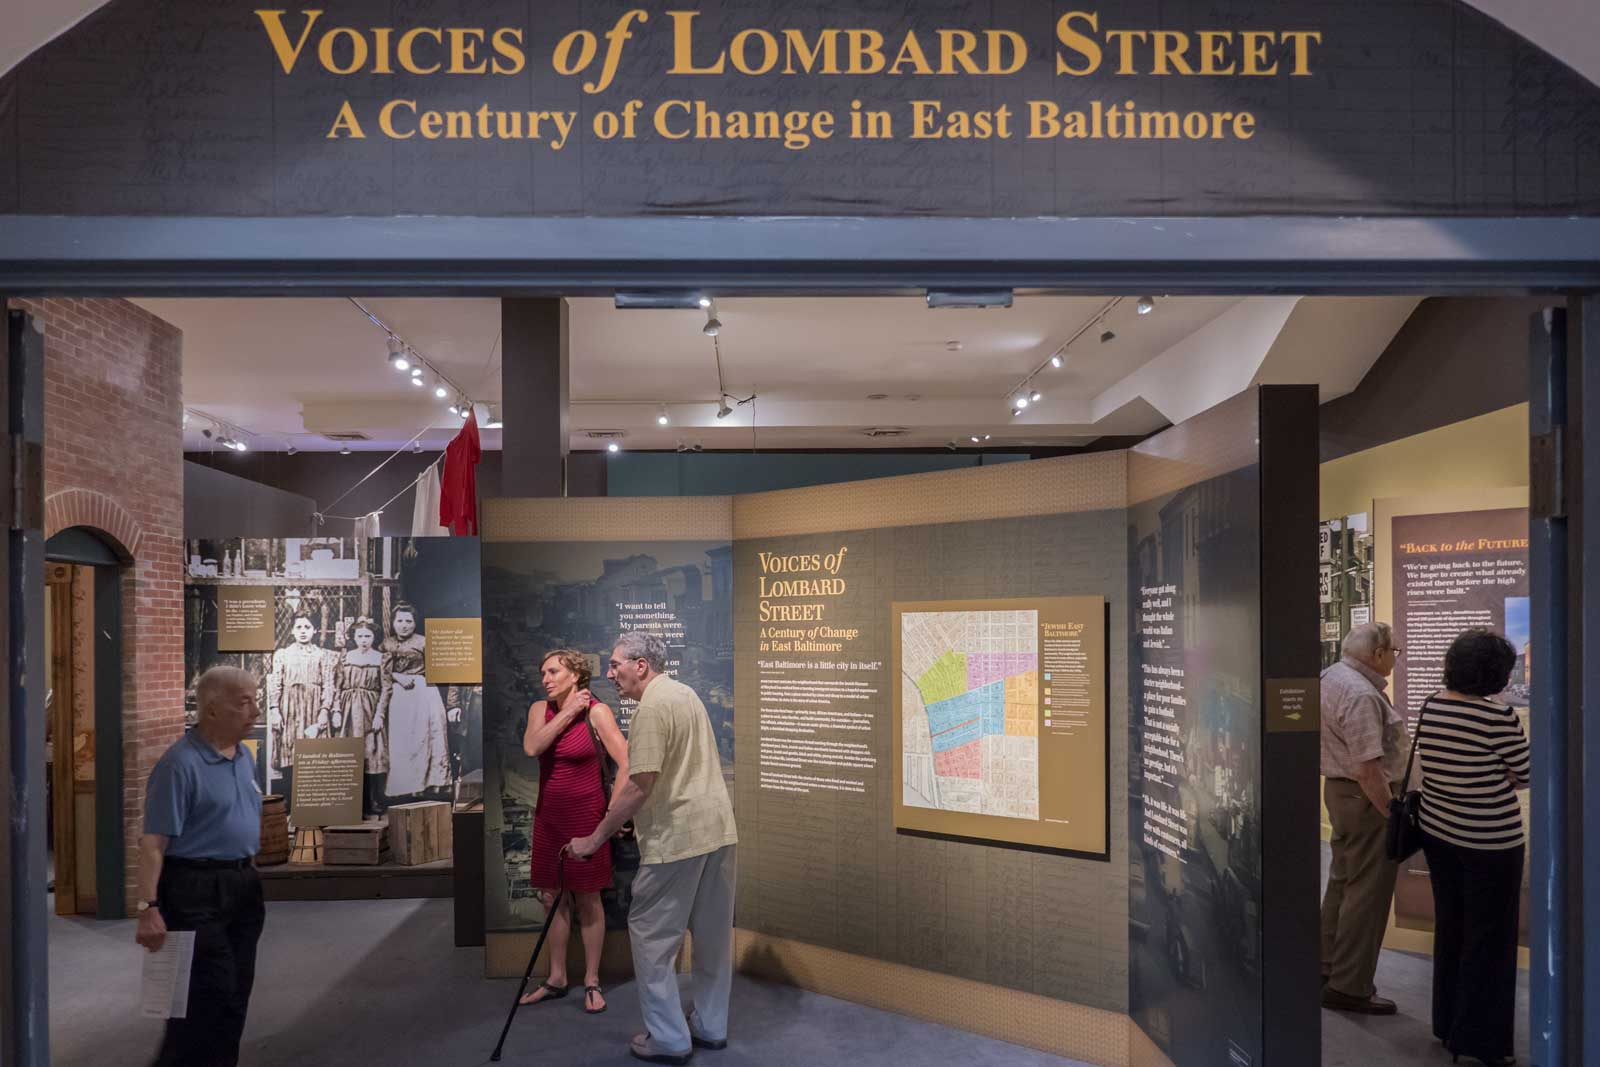 Voices of Lombard Street A Century of Change in East Baltimore Jewish Museum of Maryland